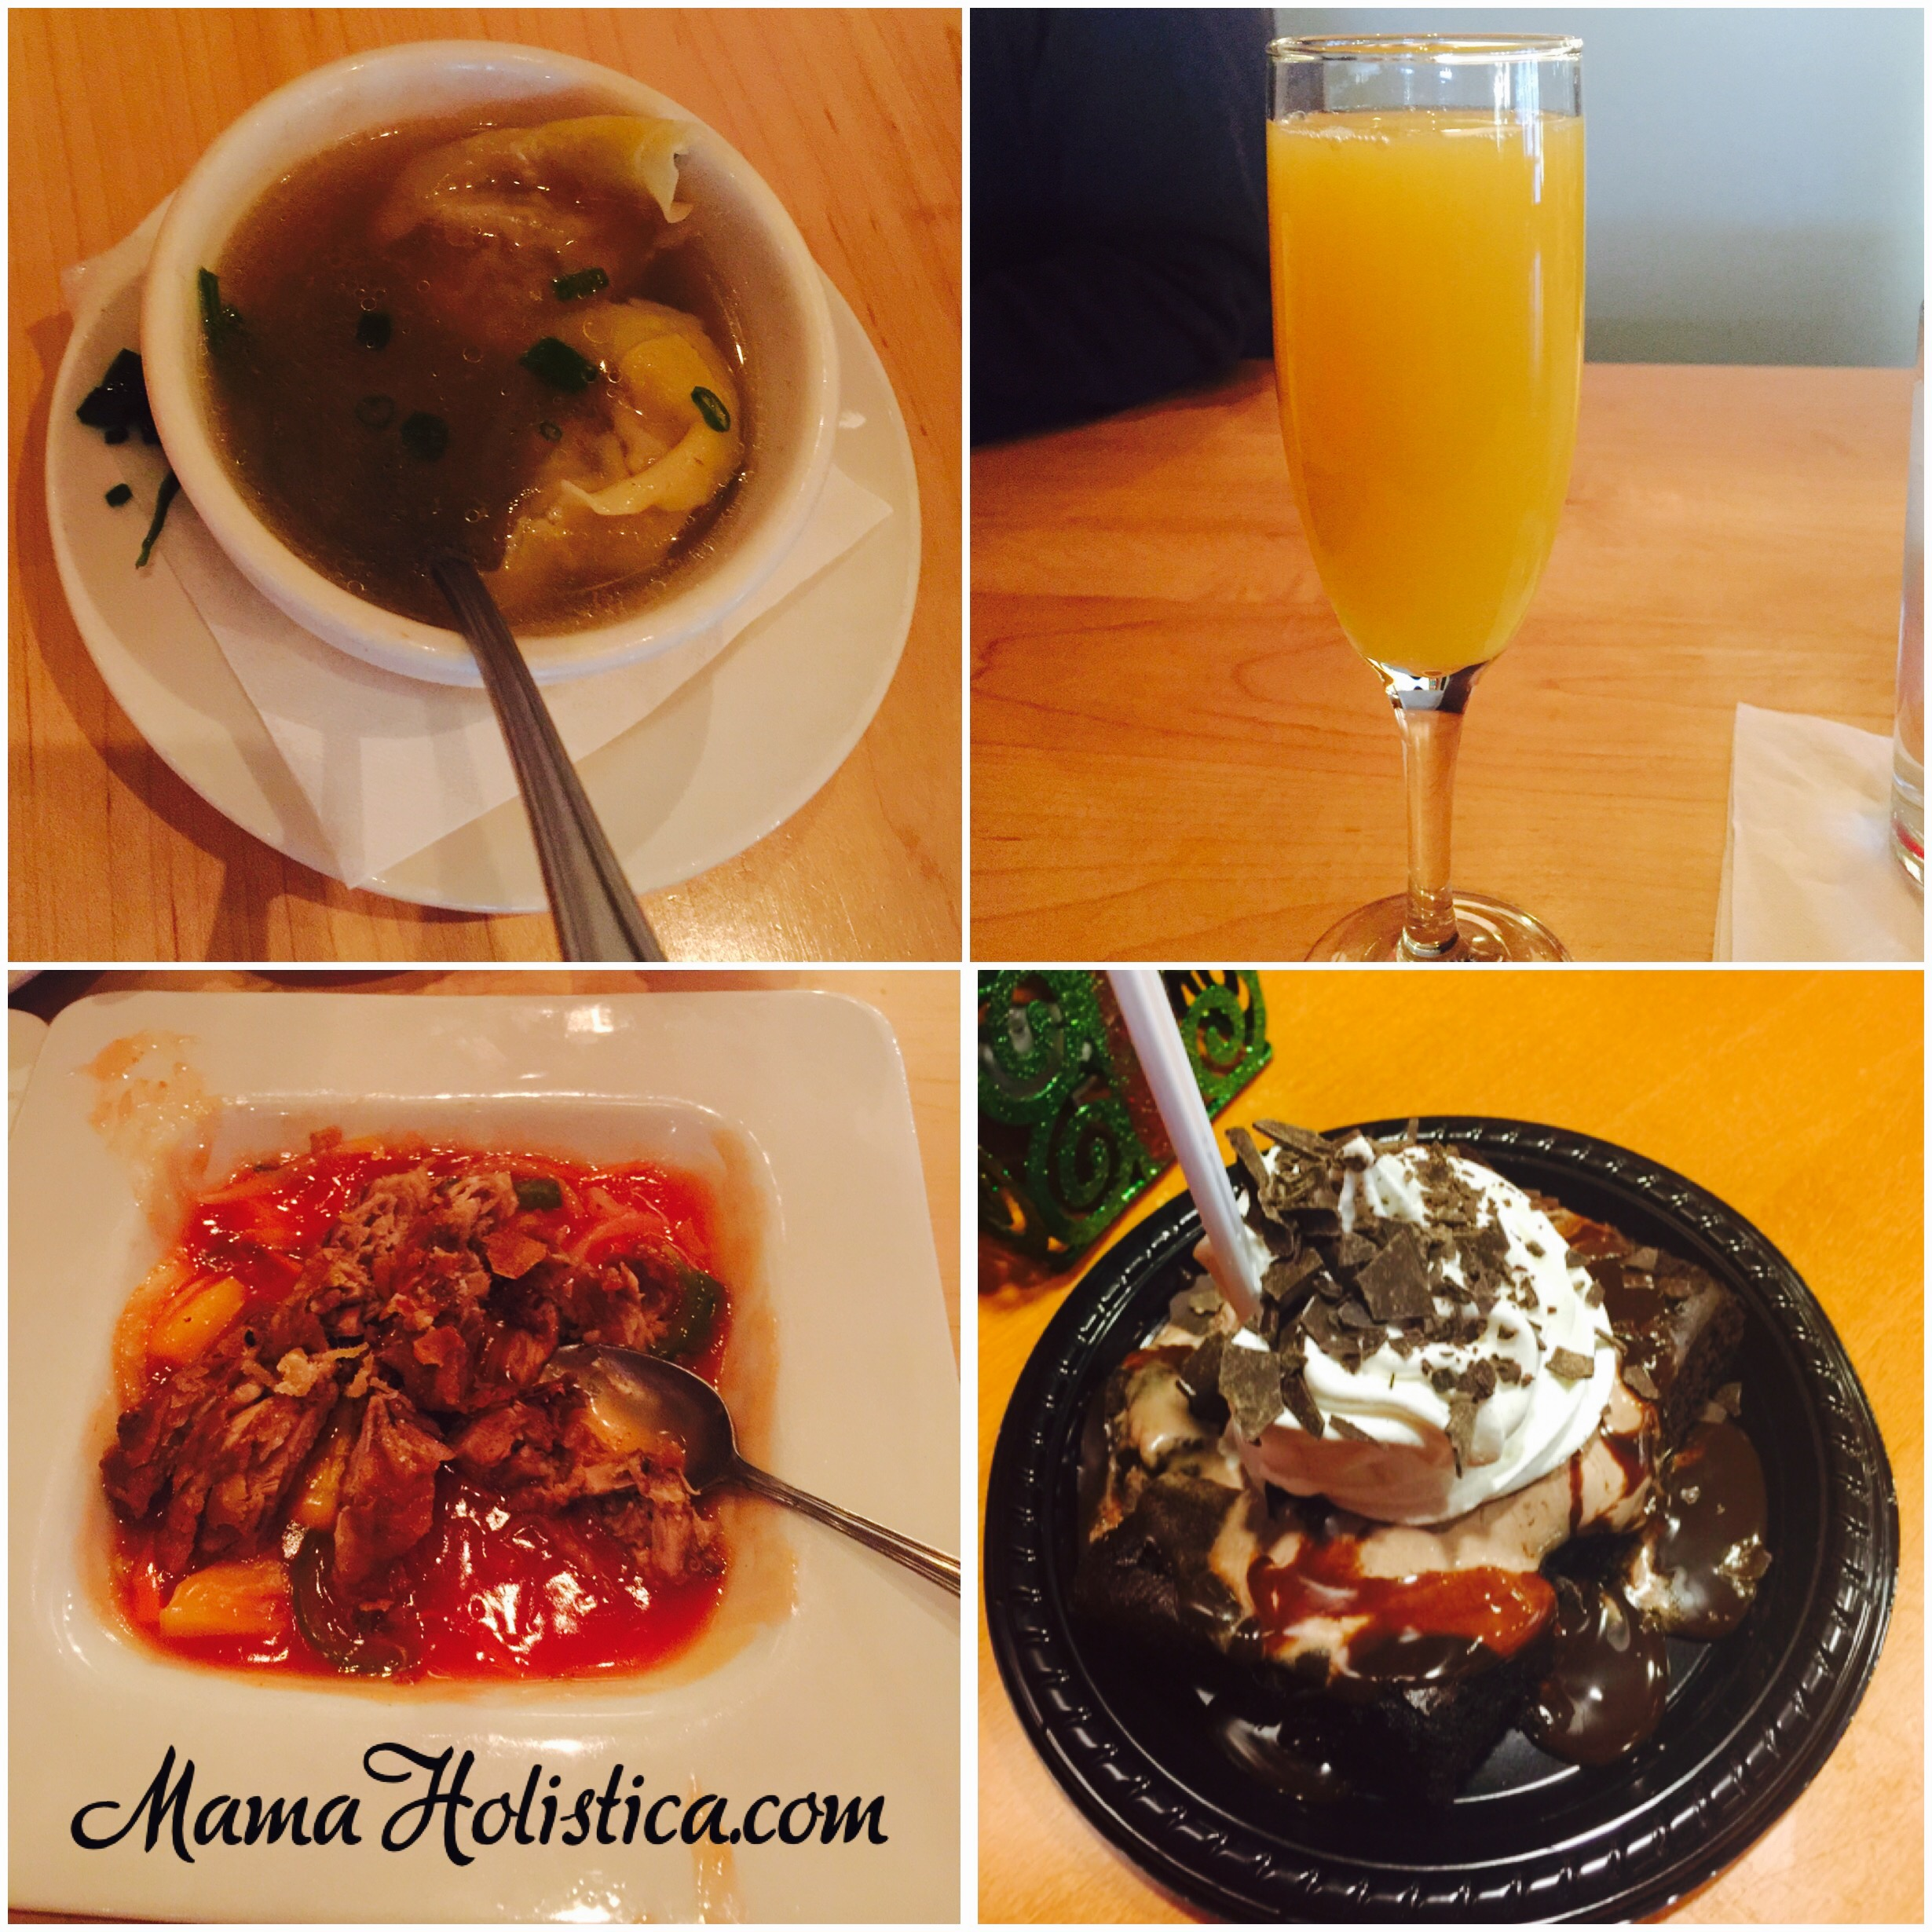 Asian Fusion Food ~ Happy New Year!!! #MM #mamaholistica